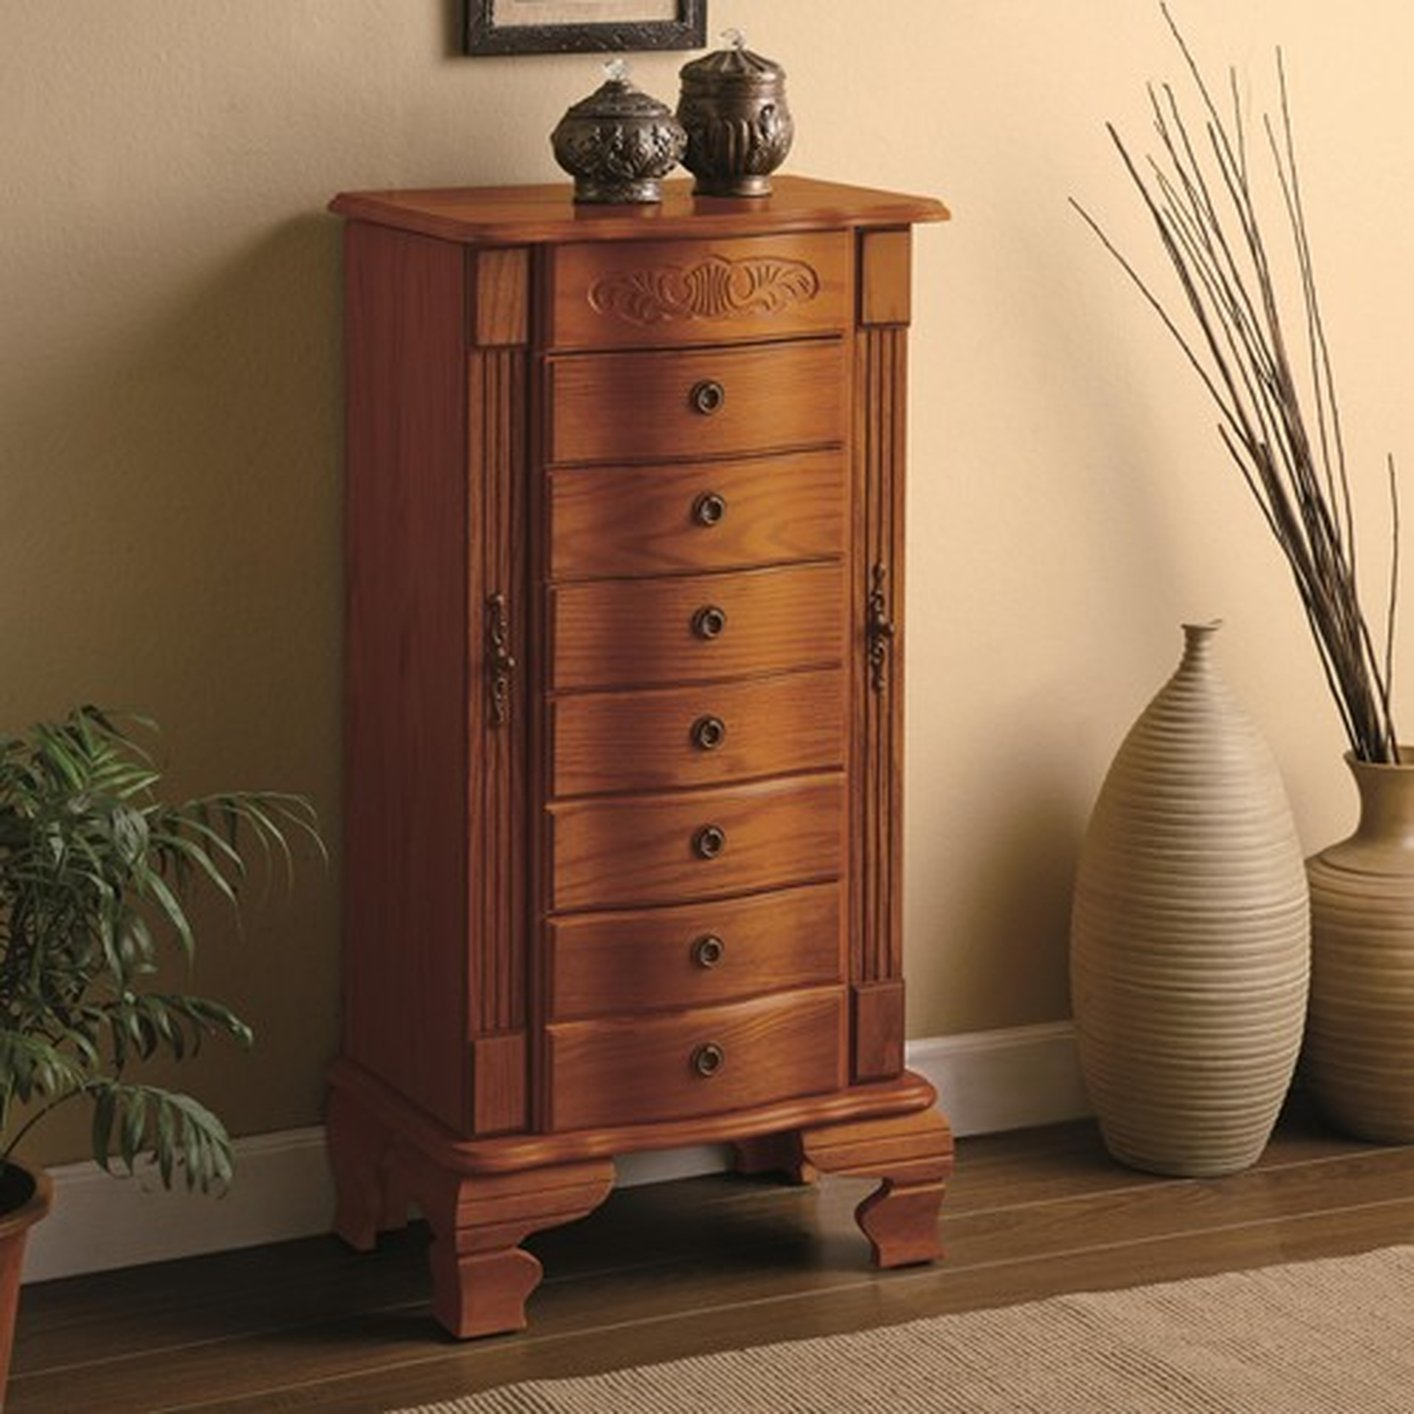 Brown Wood Jewelry Armoire StealASofa Furniture Outlet Los